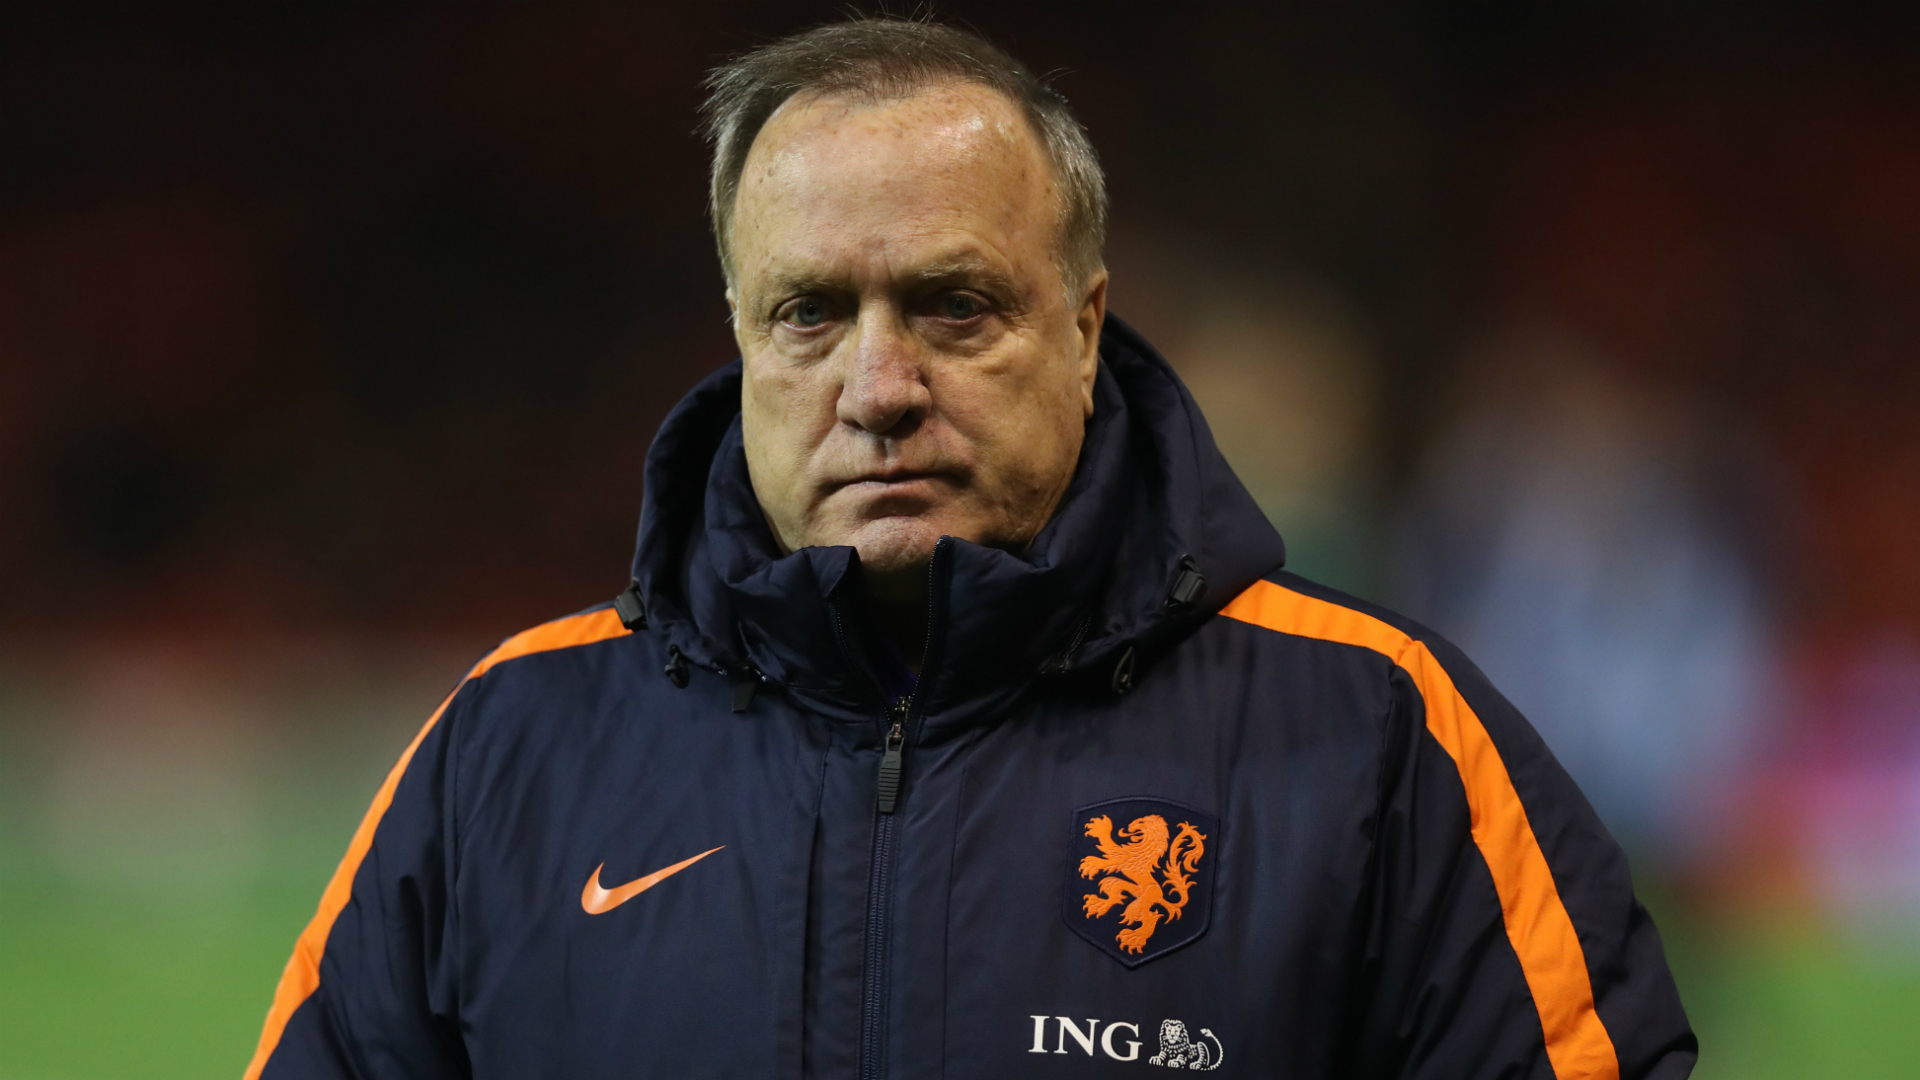 Advocaat takes charge of Feyenoord after Stam exit